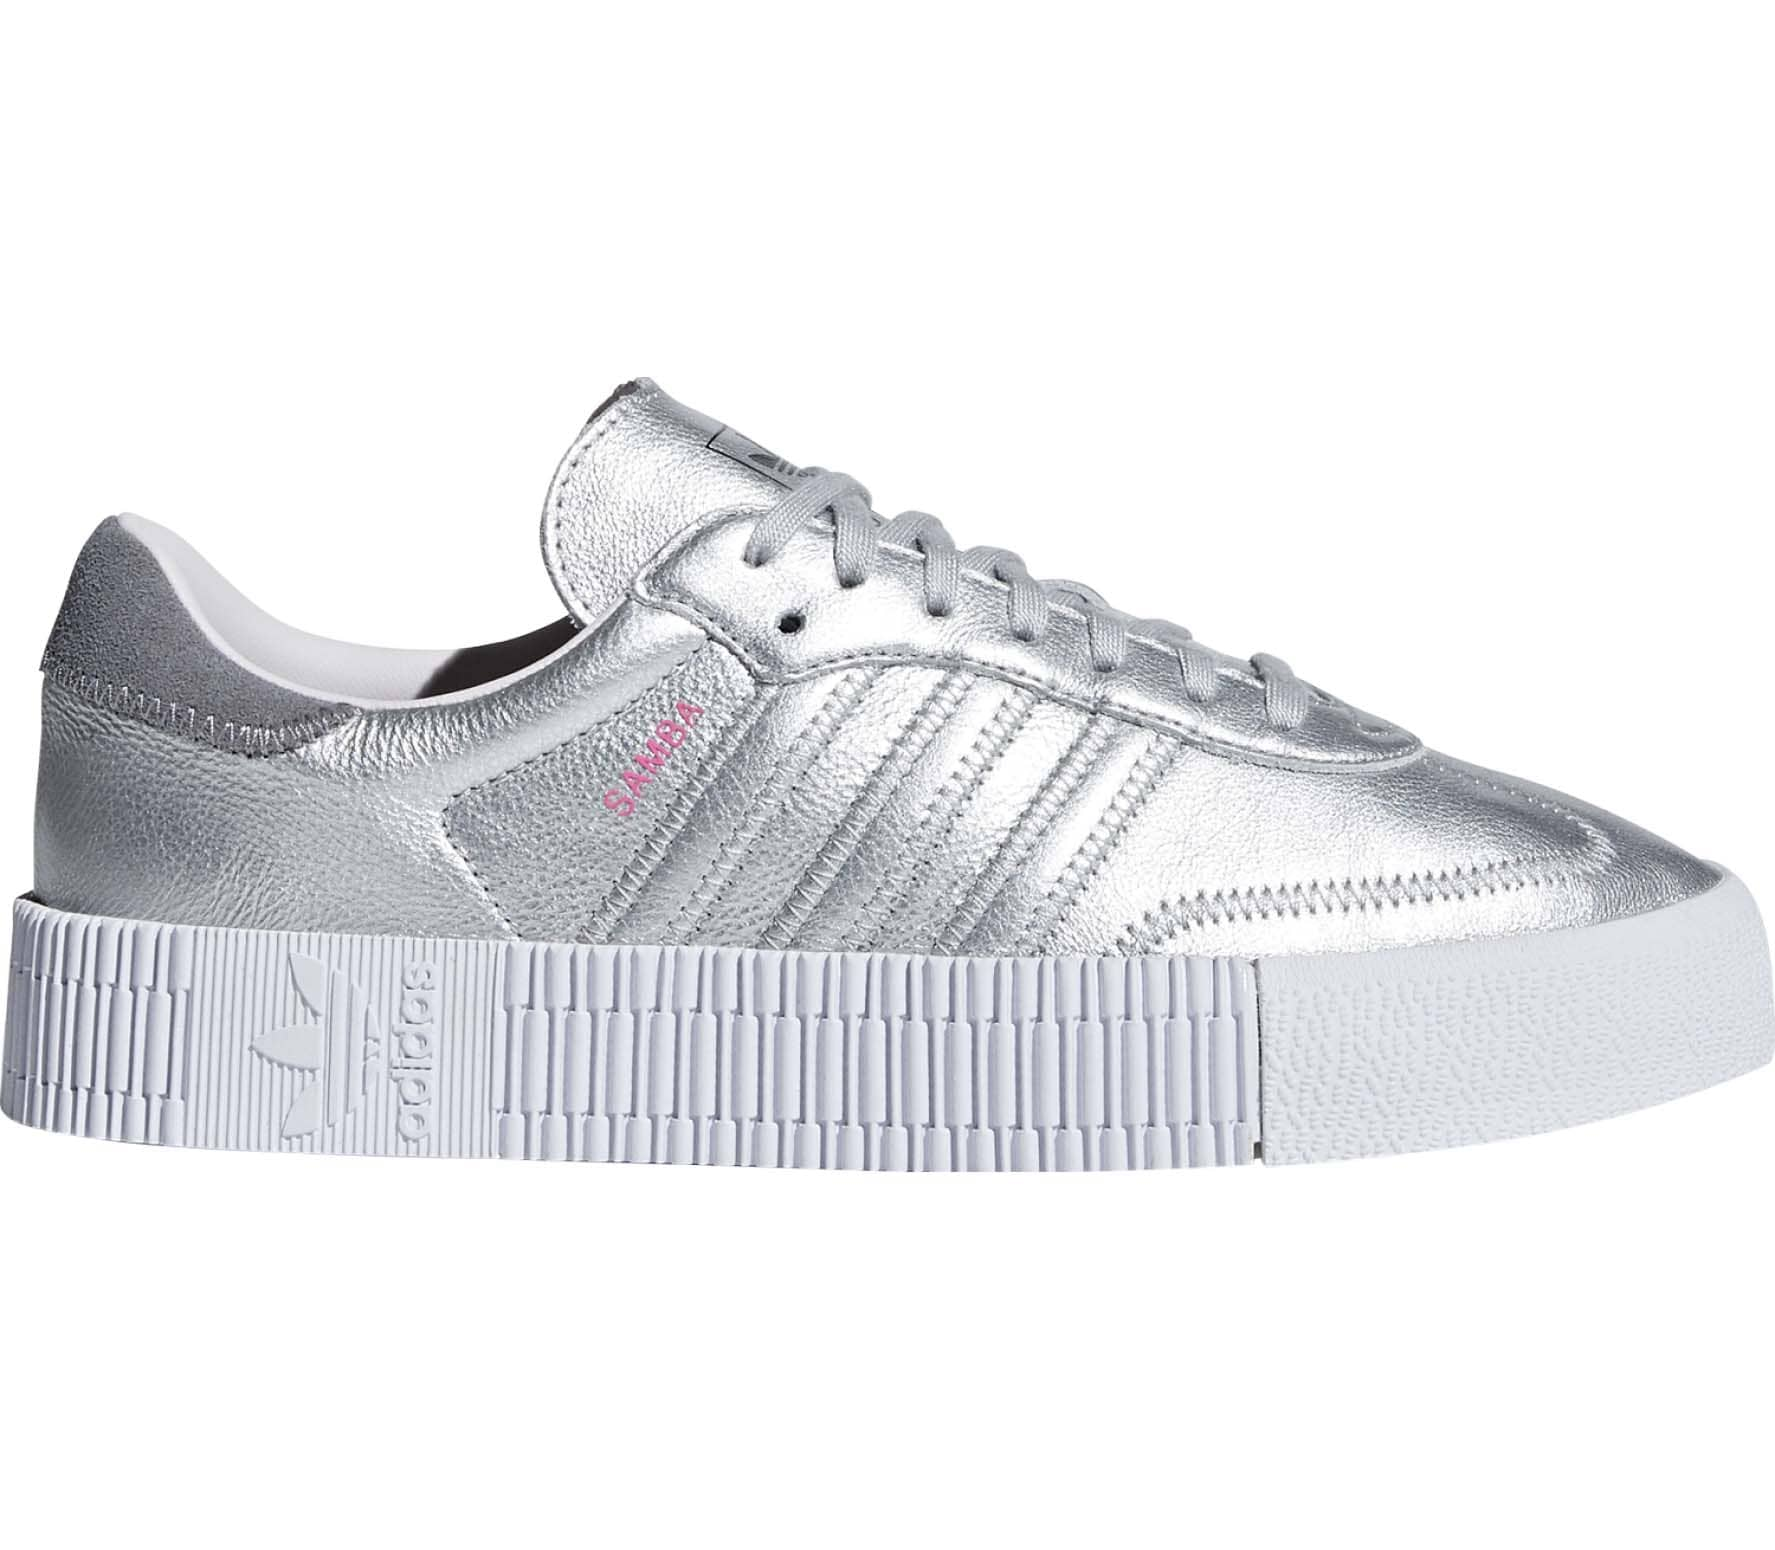 separation shoes 54bda 6ad4e adidas Originals - Sambarose Damen Sneaker (silber)